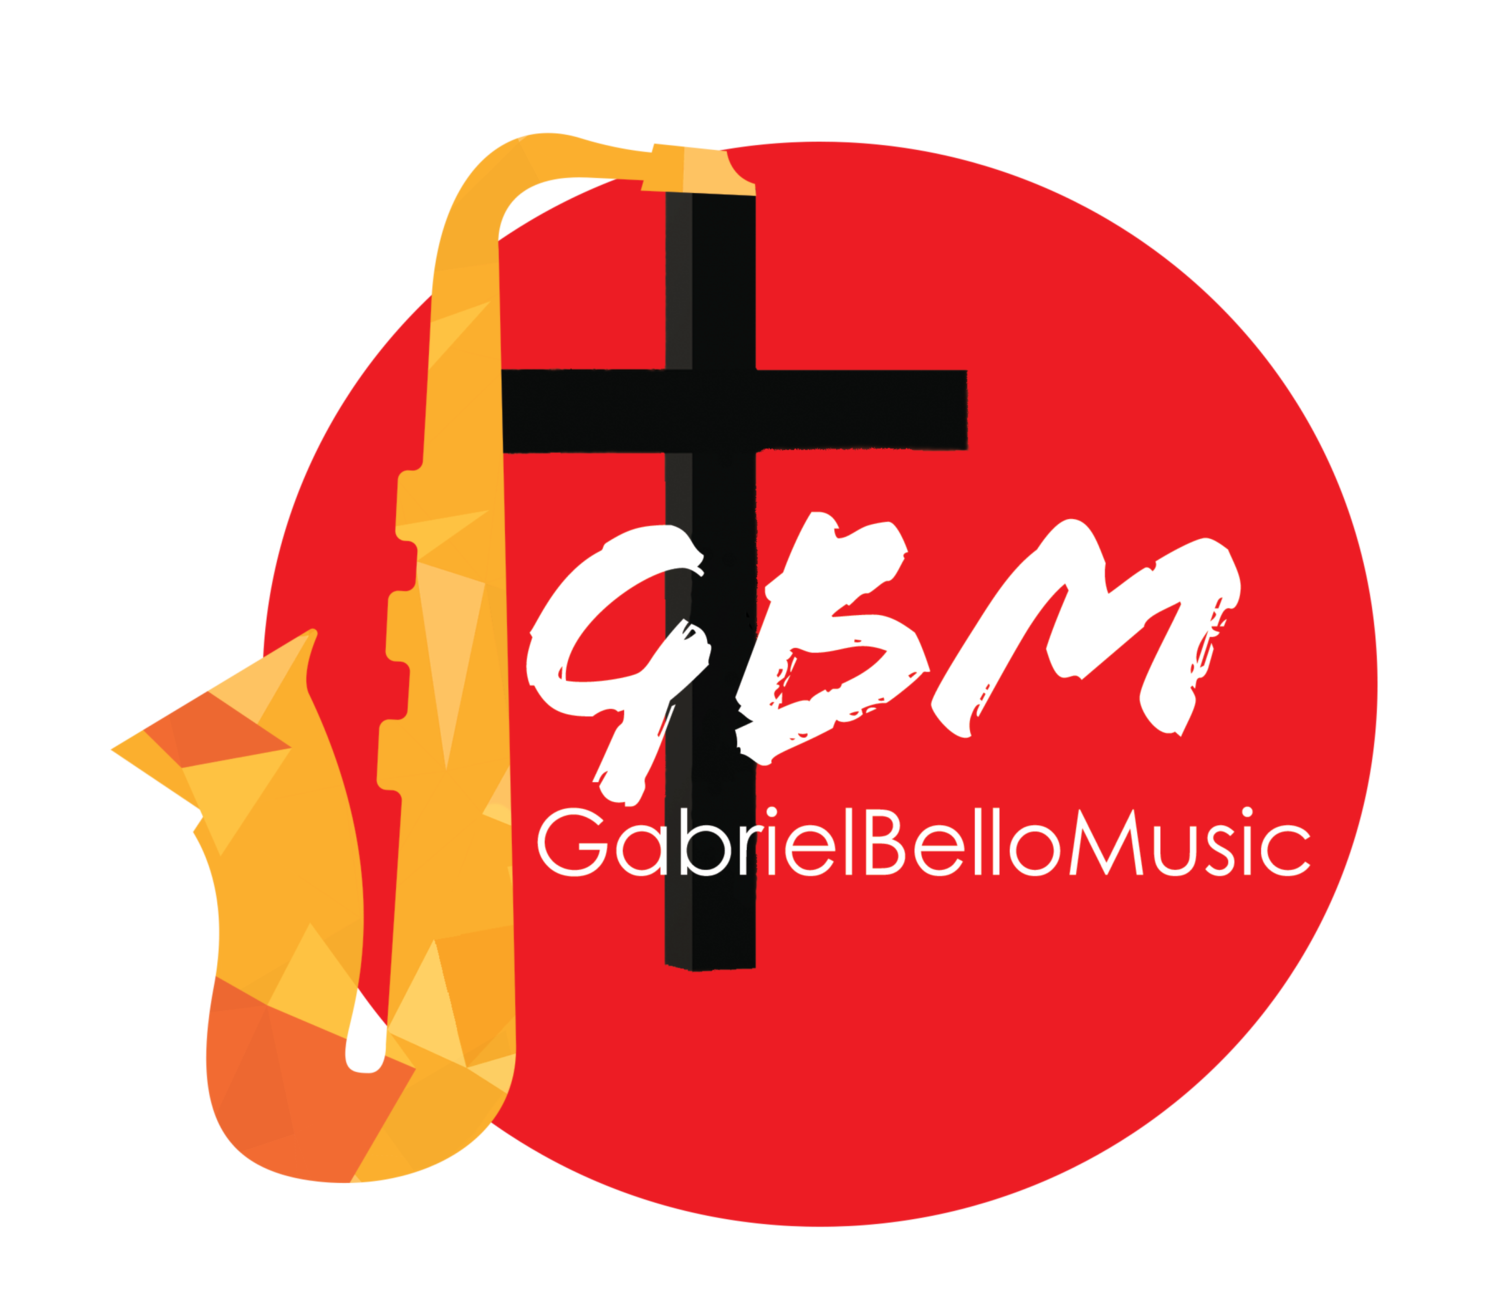 Gabriel Bello Music